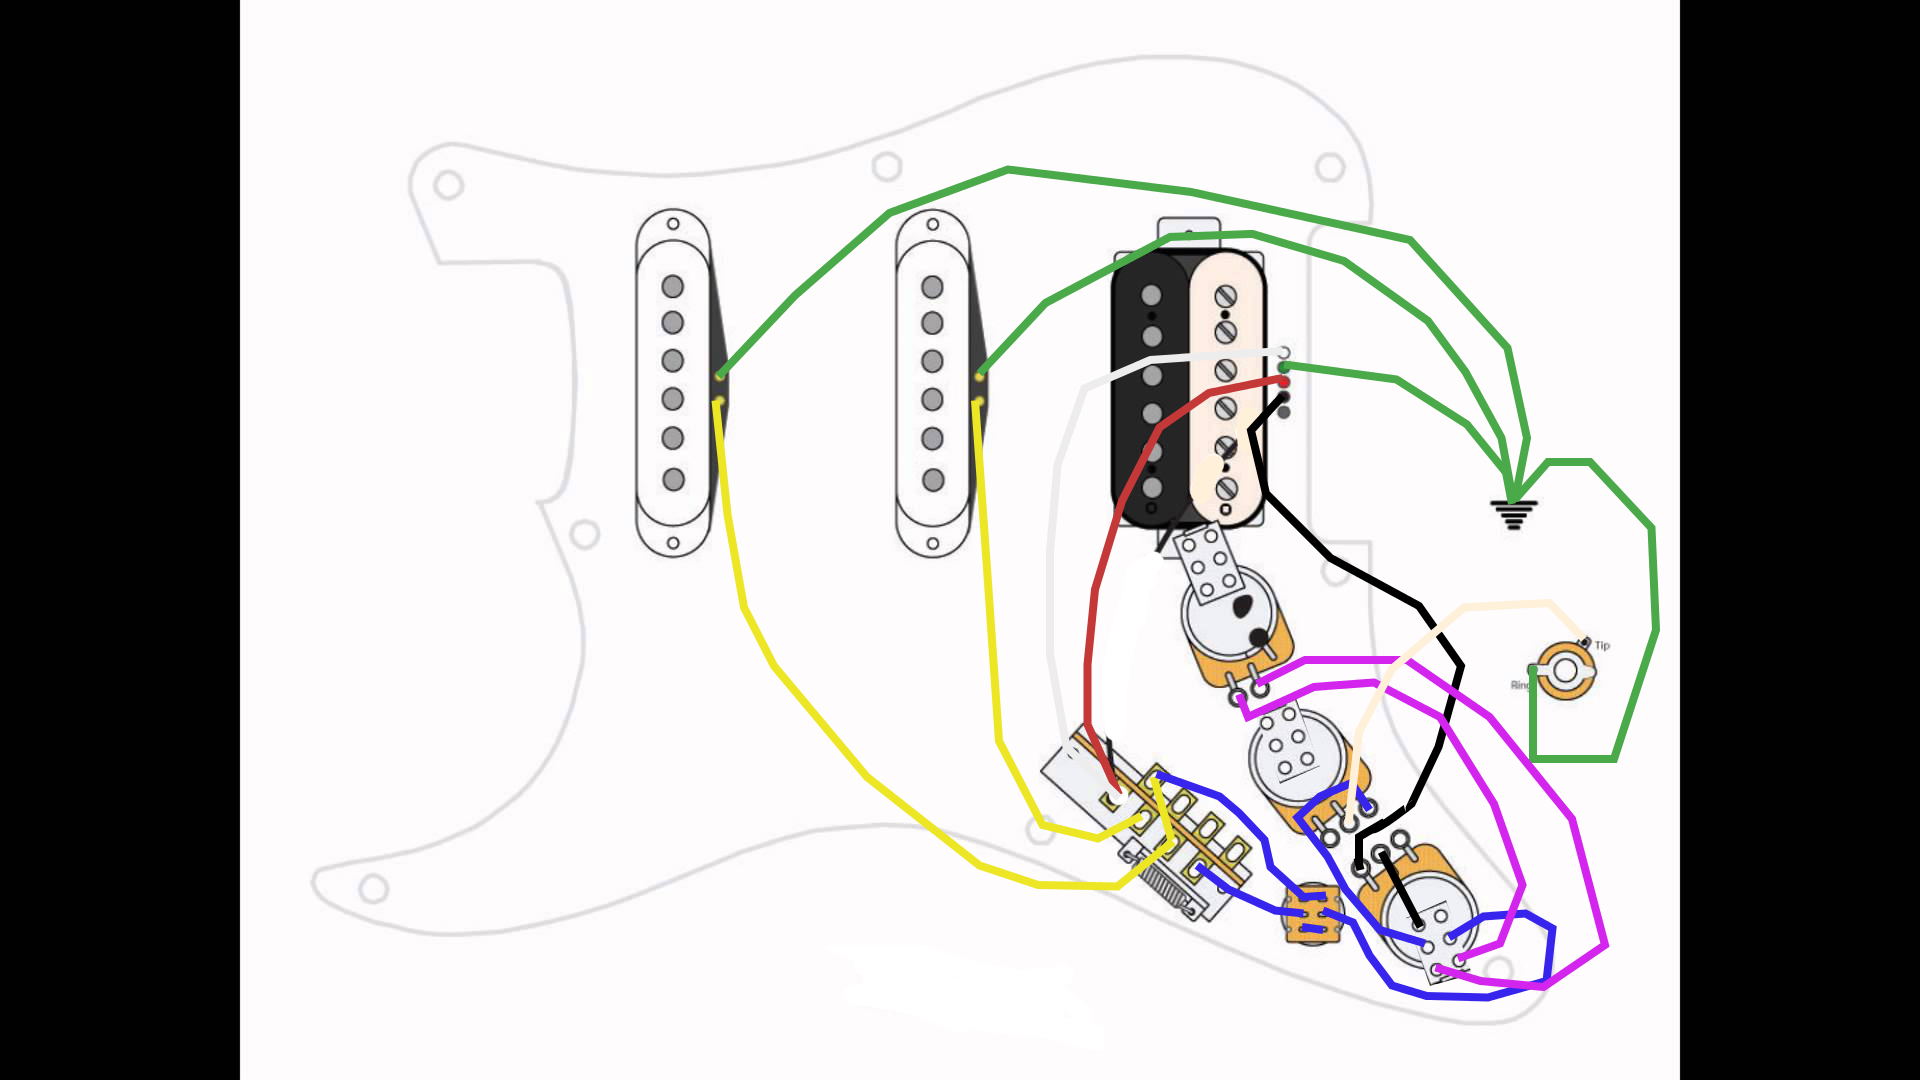 Diagram Fender Stratocaster Wiring Diagram Sss Full Version Hd Quality Diagram Sss Edrewiringk Queidue It